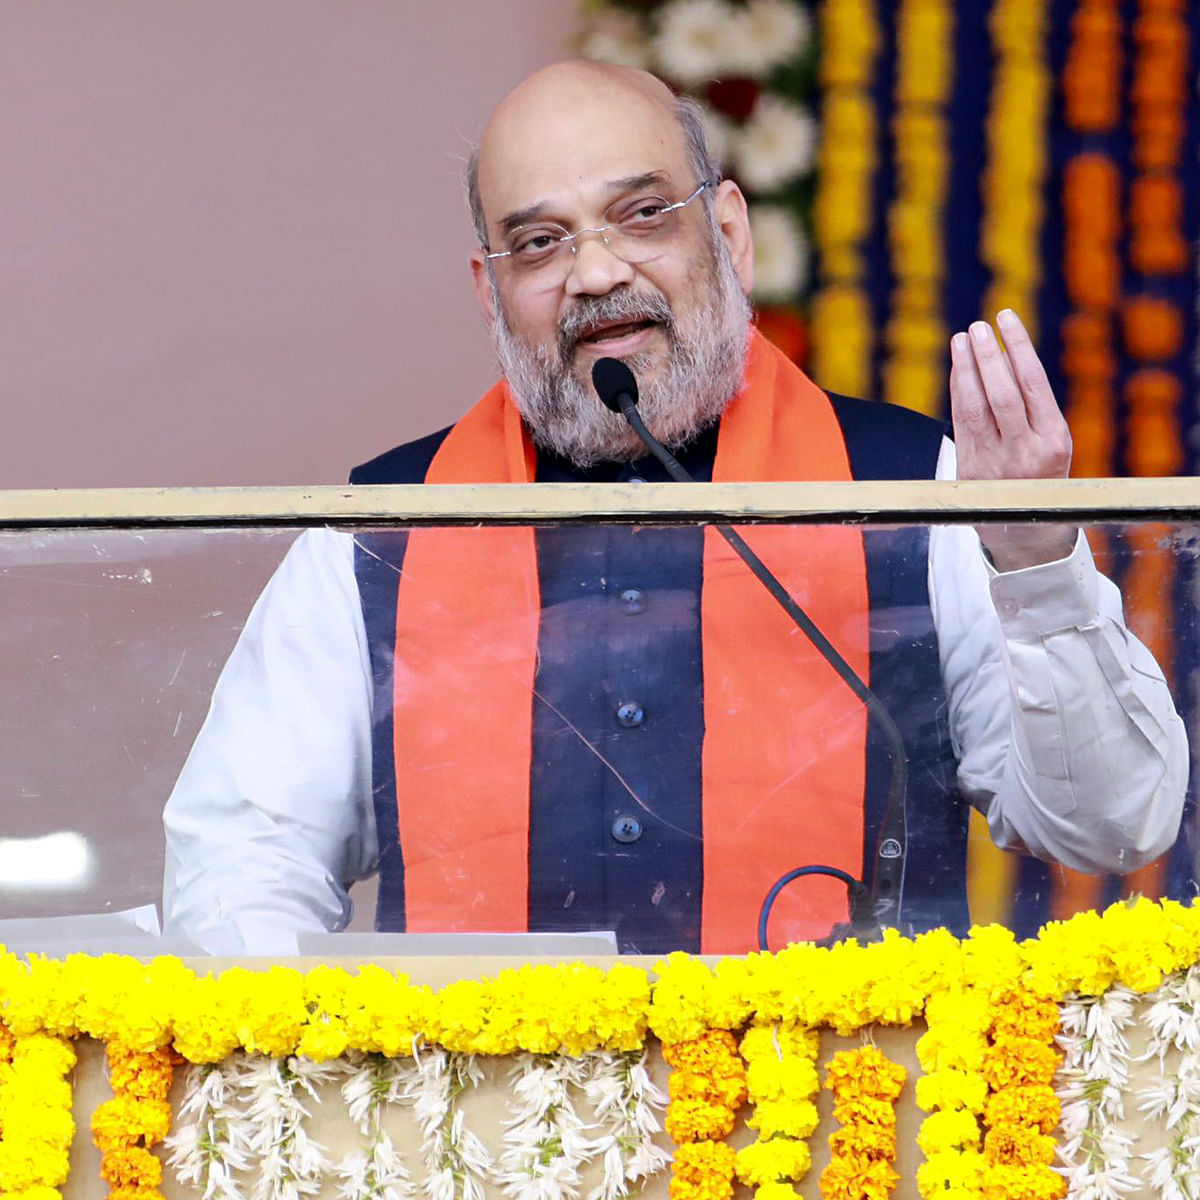 'Inadvertent error': Twitter clarifies after removing Amit Shah's display photo citing copyright violation